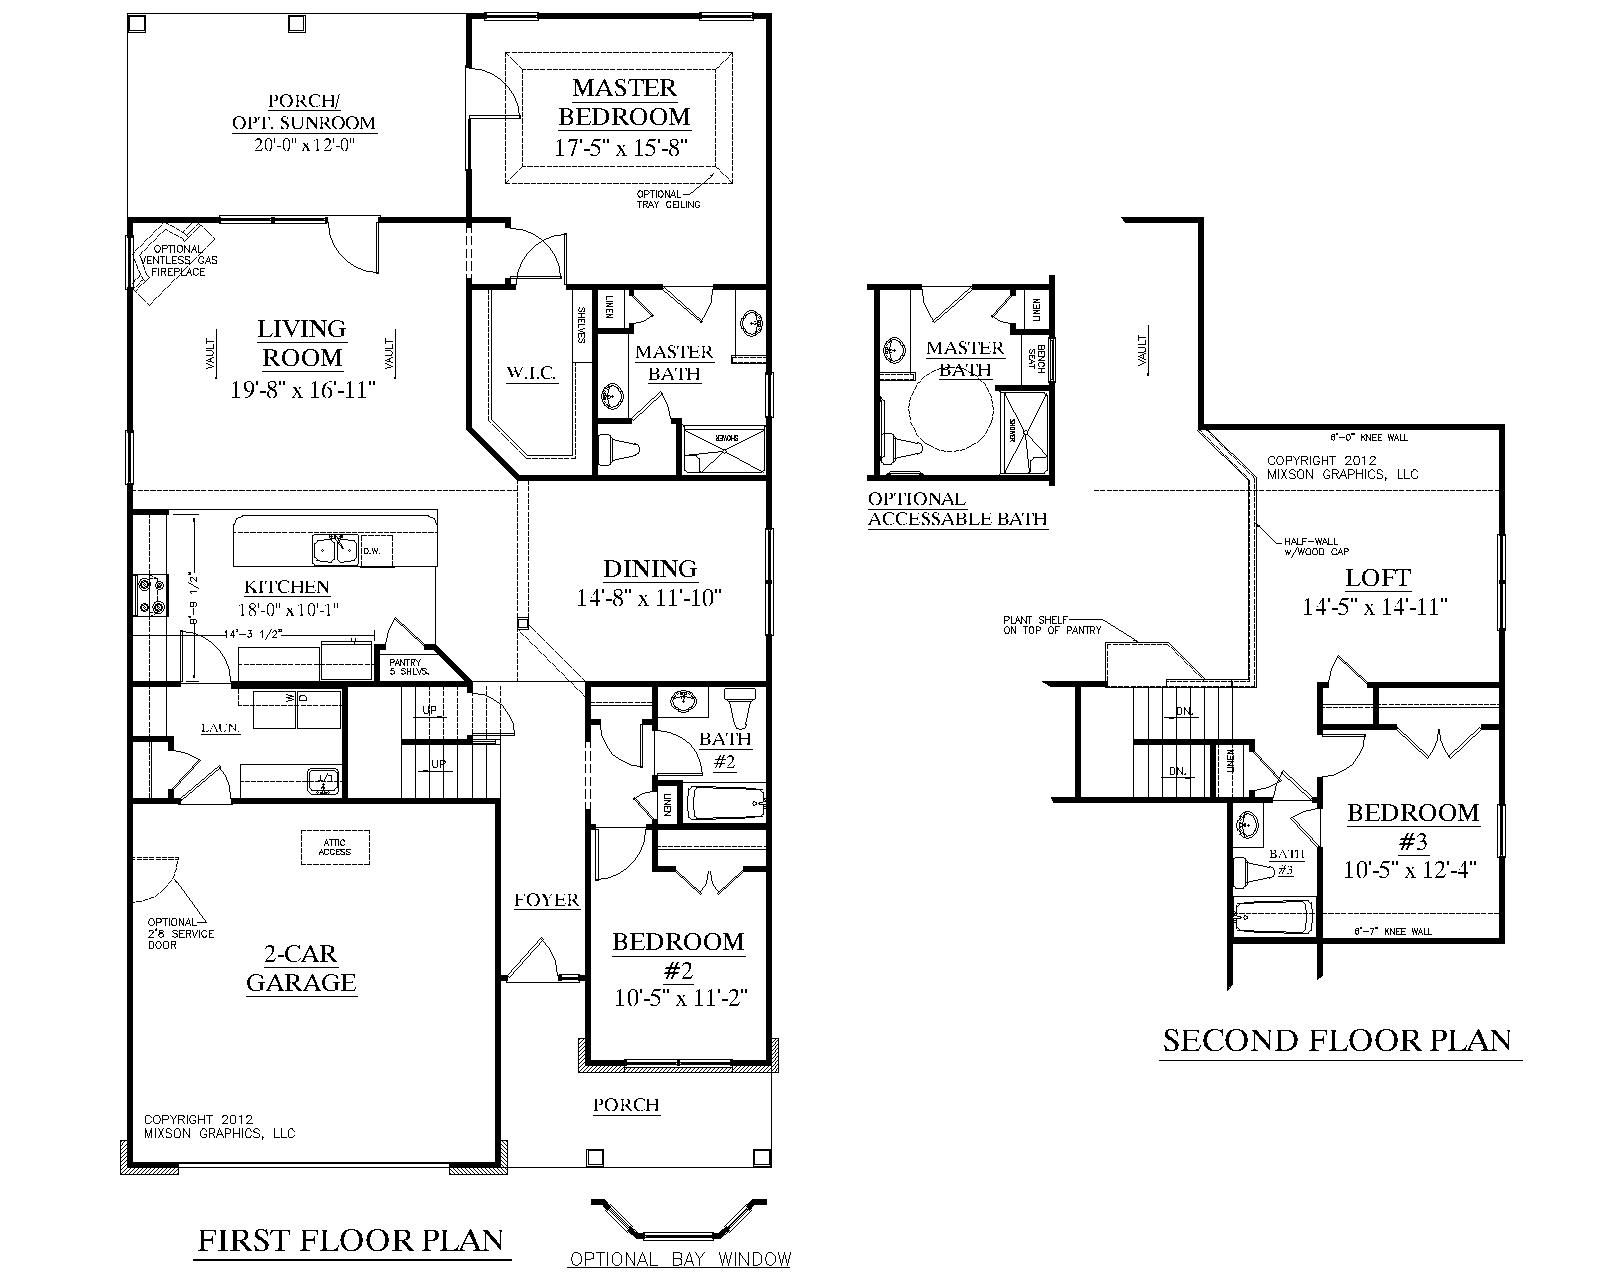 House plan 2224 kingstree floor plan traditional 1 1 2 for 1 level house plans with 2 master suites